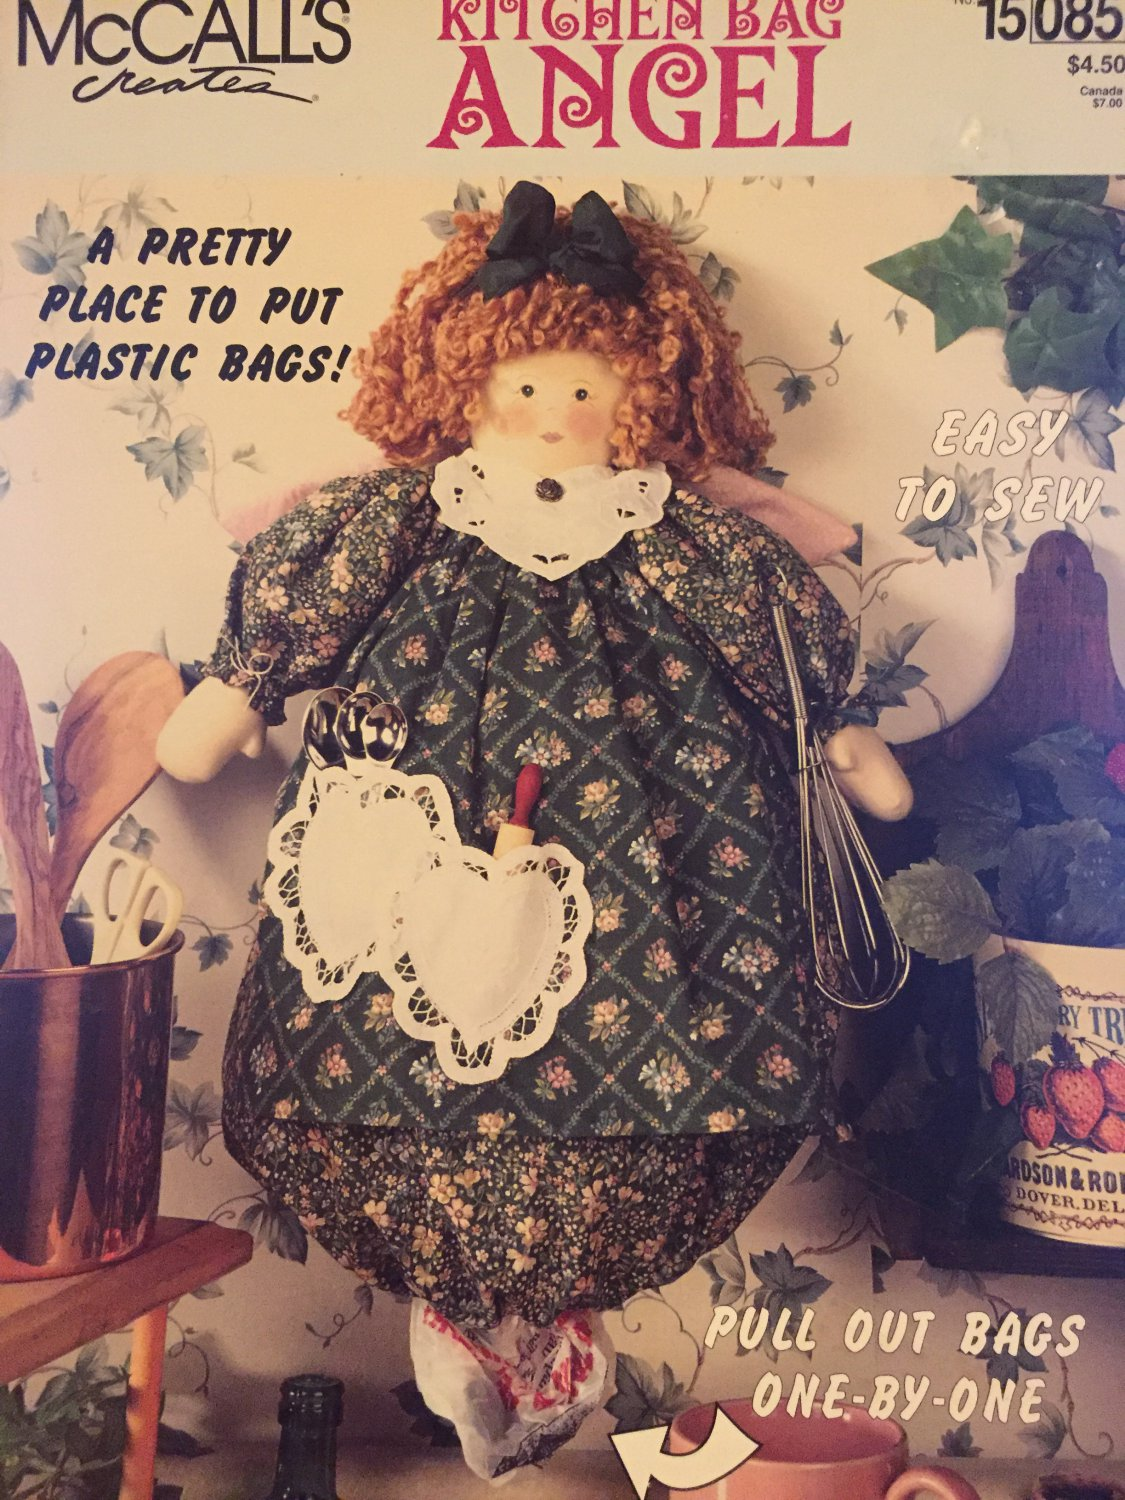 McCall�s 15085 Kitchen Bag Angel Sewing Pattern for storing plastic bags